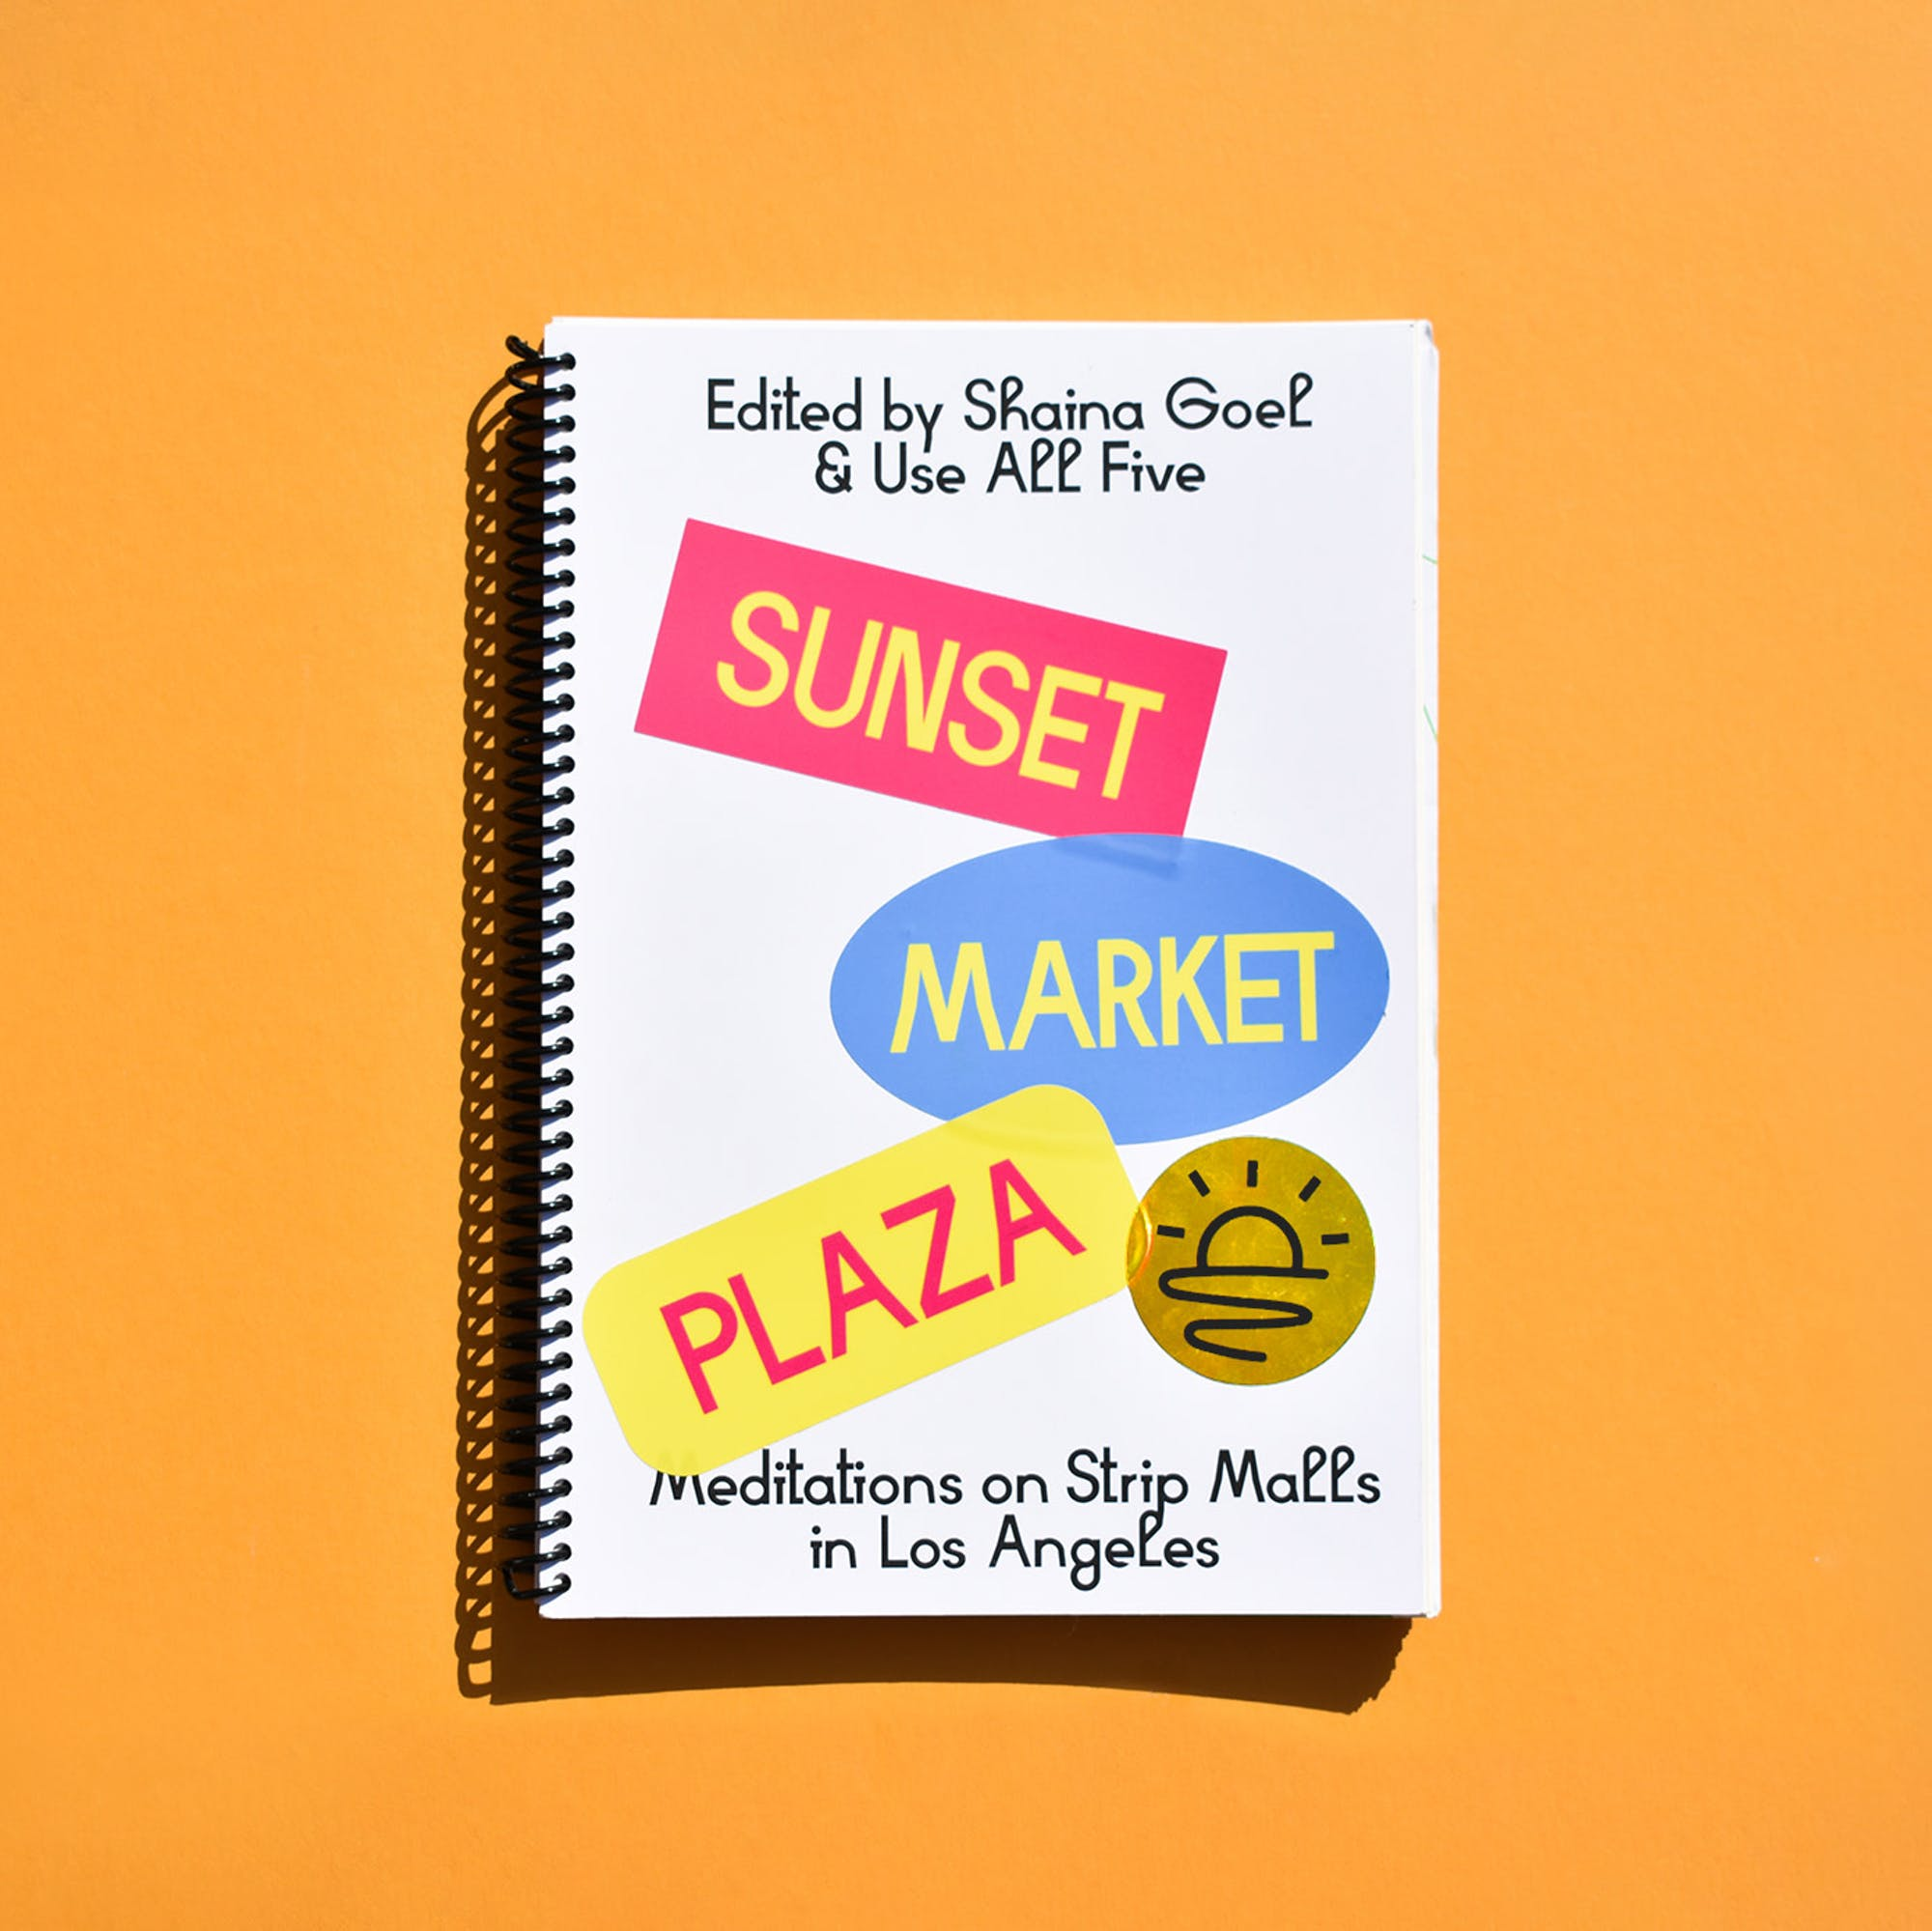 Sunset Market Plaza Book Cover